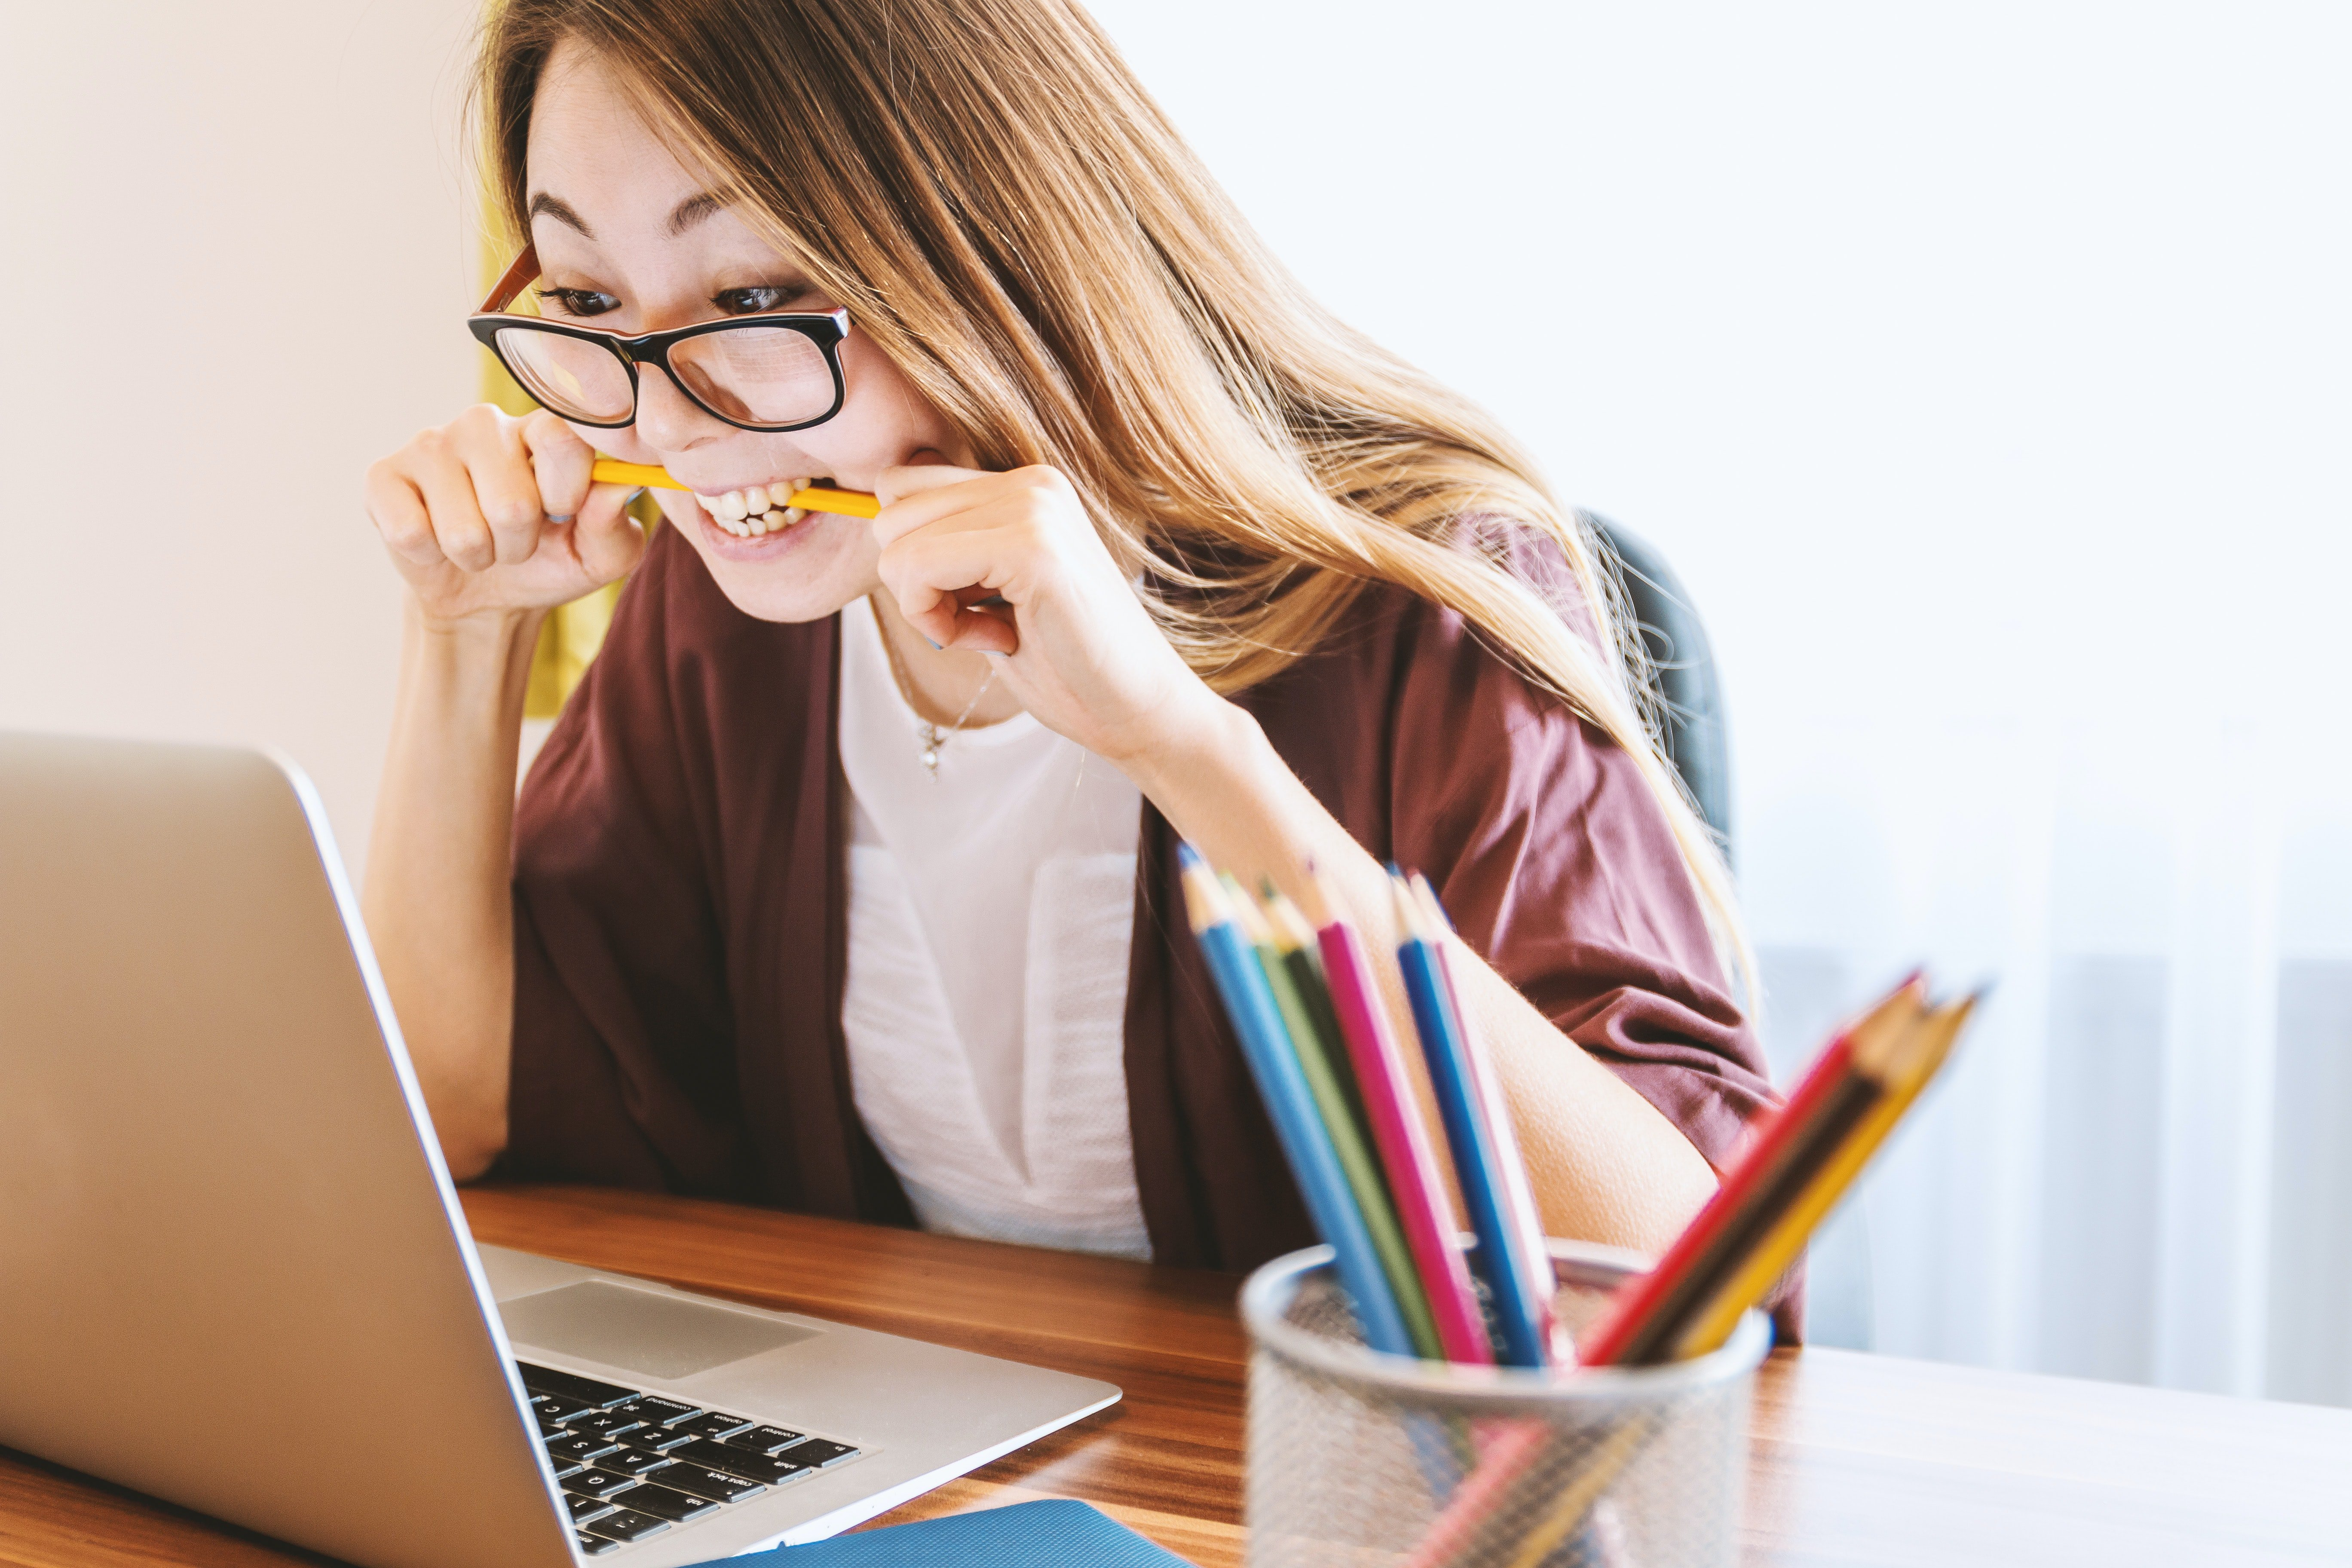 woman biting pencil while looking at laptop